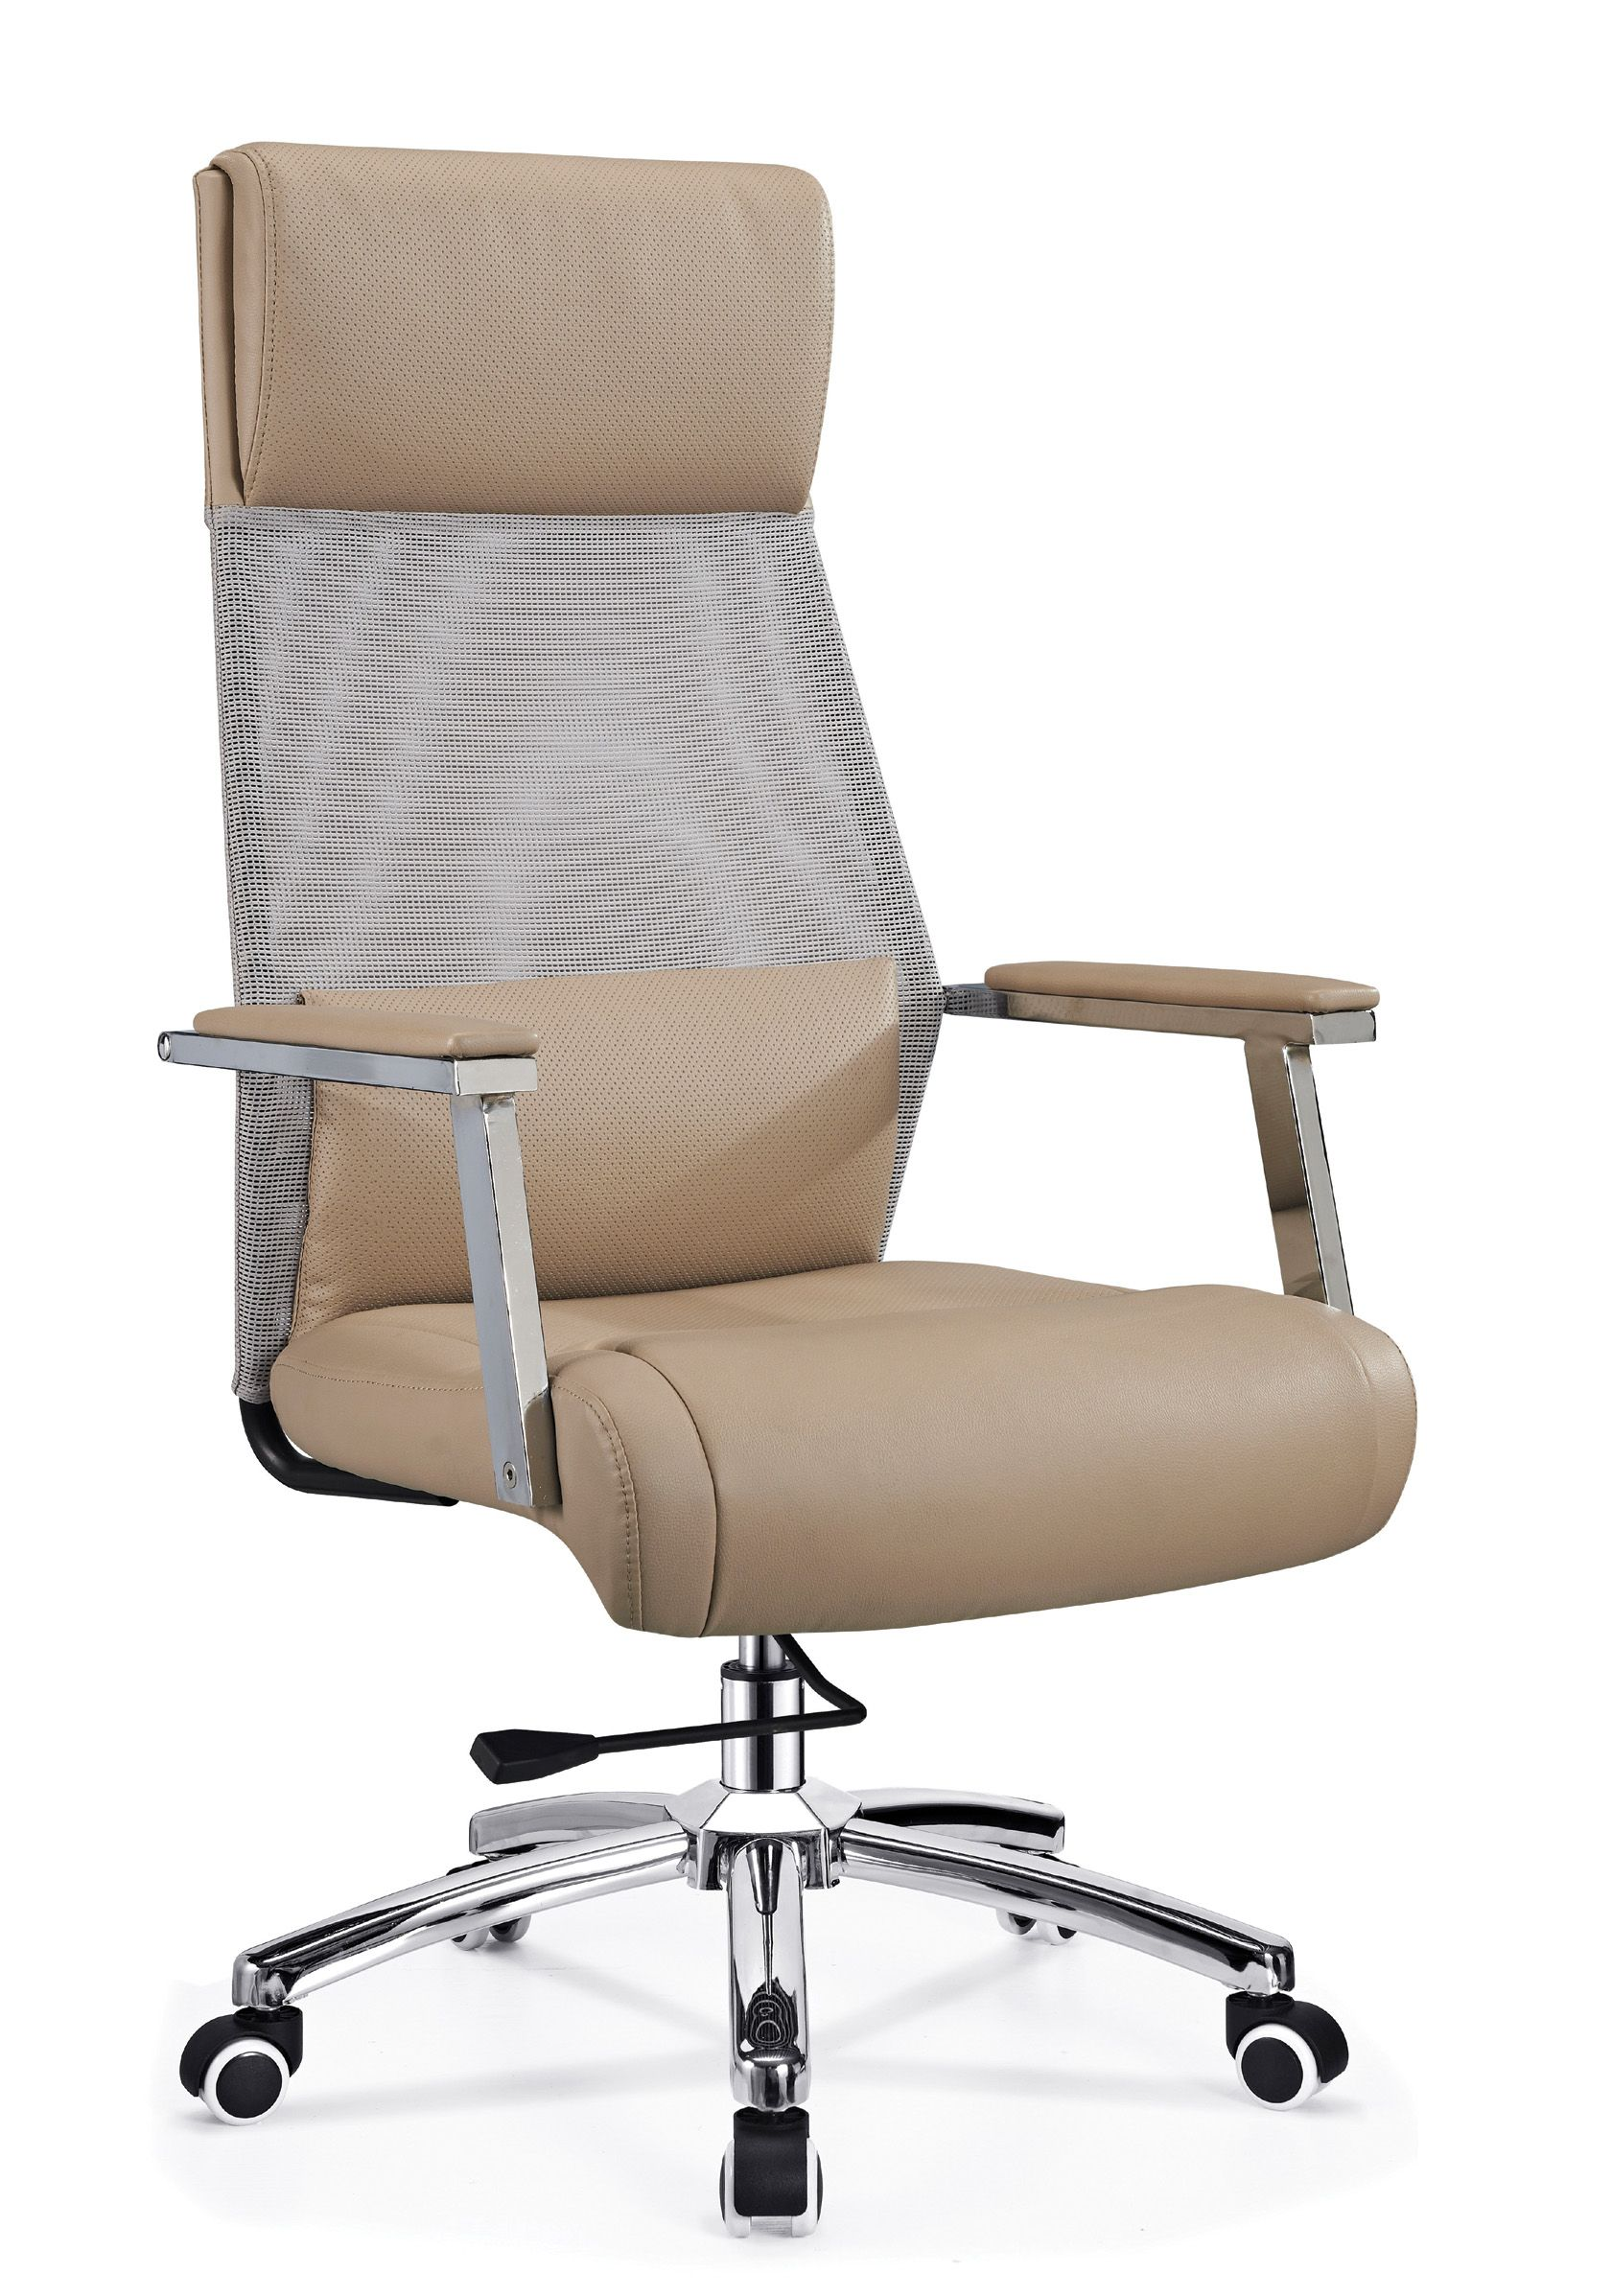 office chair mesh chair office furniture high back office chair